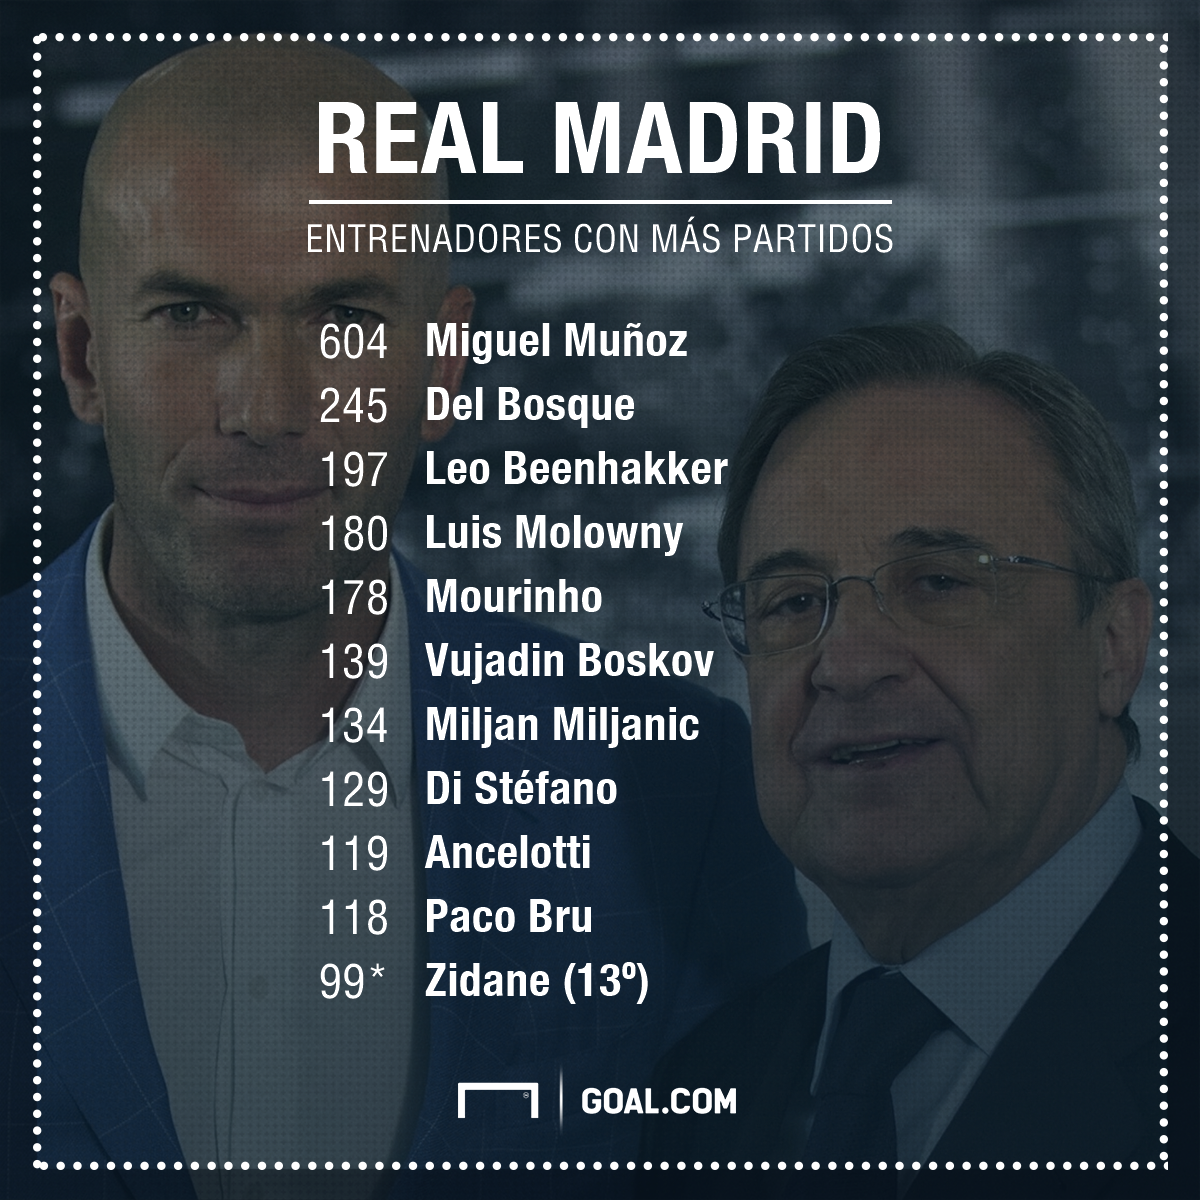 GFX Info The coaches with most games in Real Madrid History